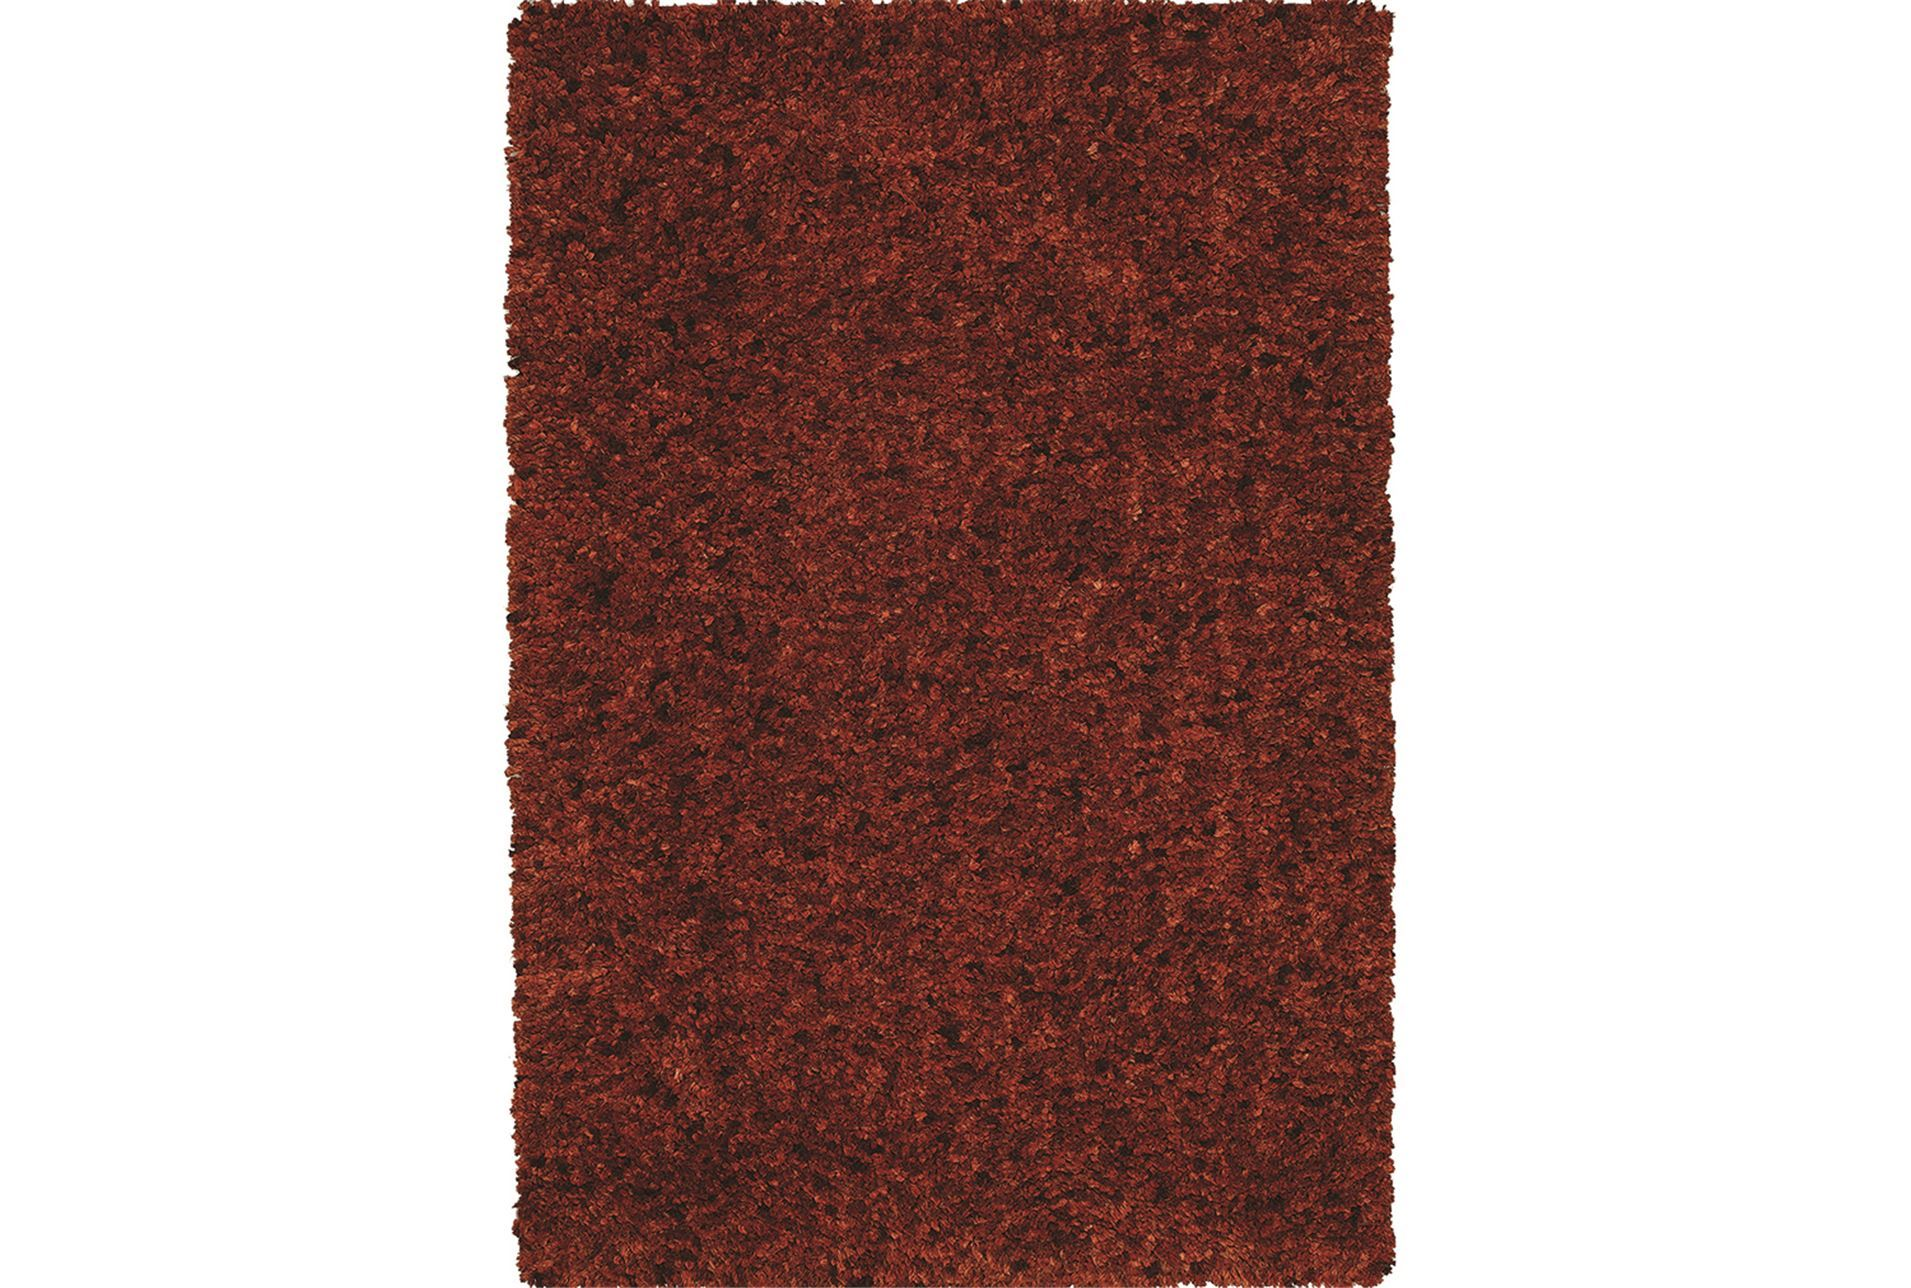 60x90 rug dolce terracotta living spaces for Living spaces rugs